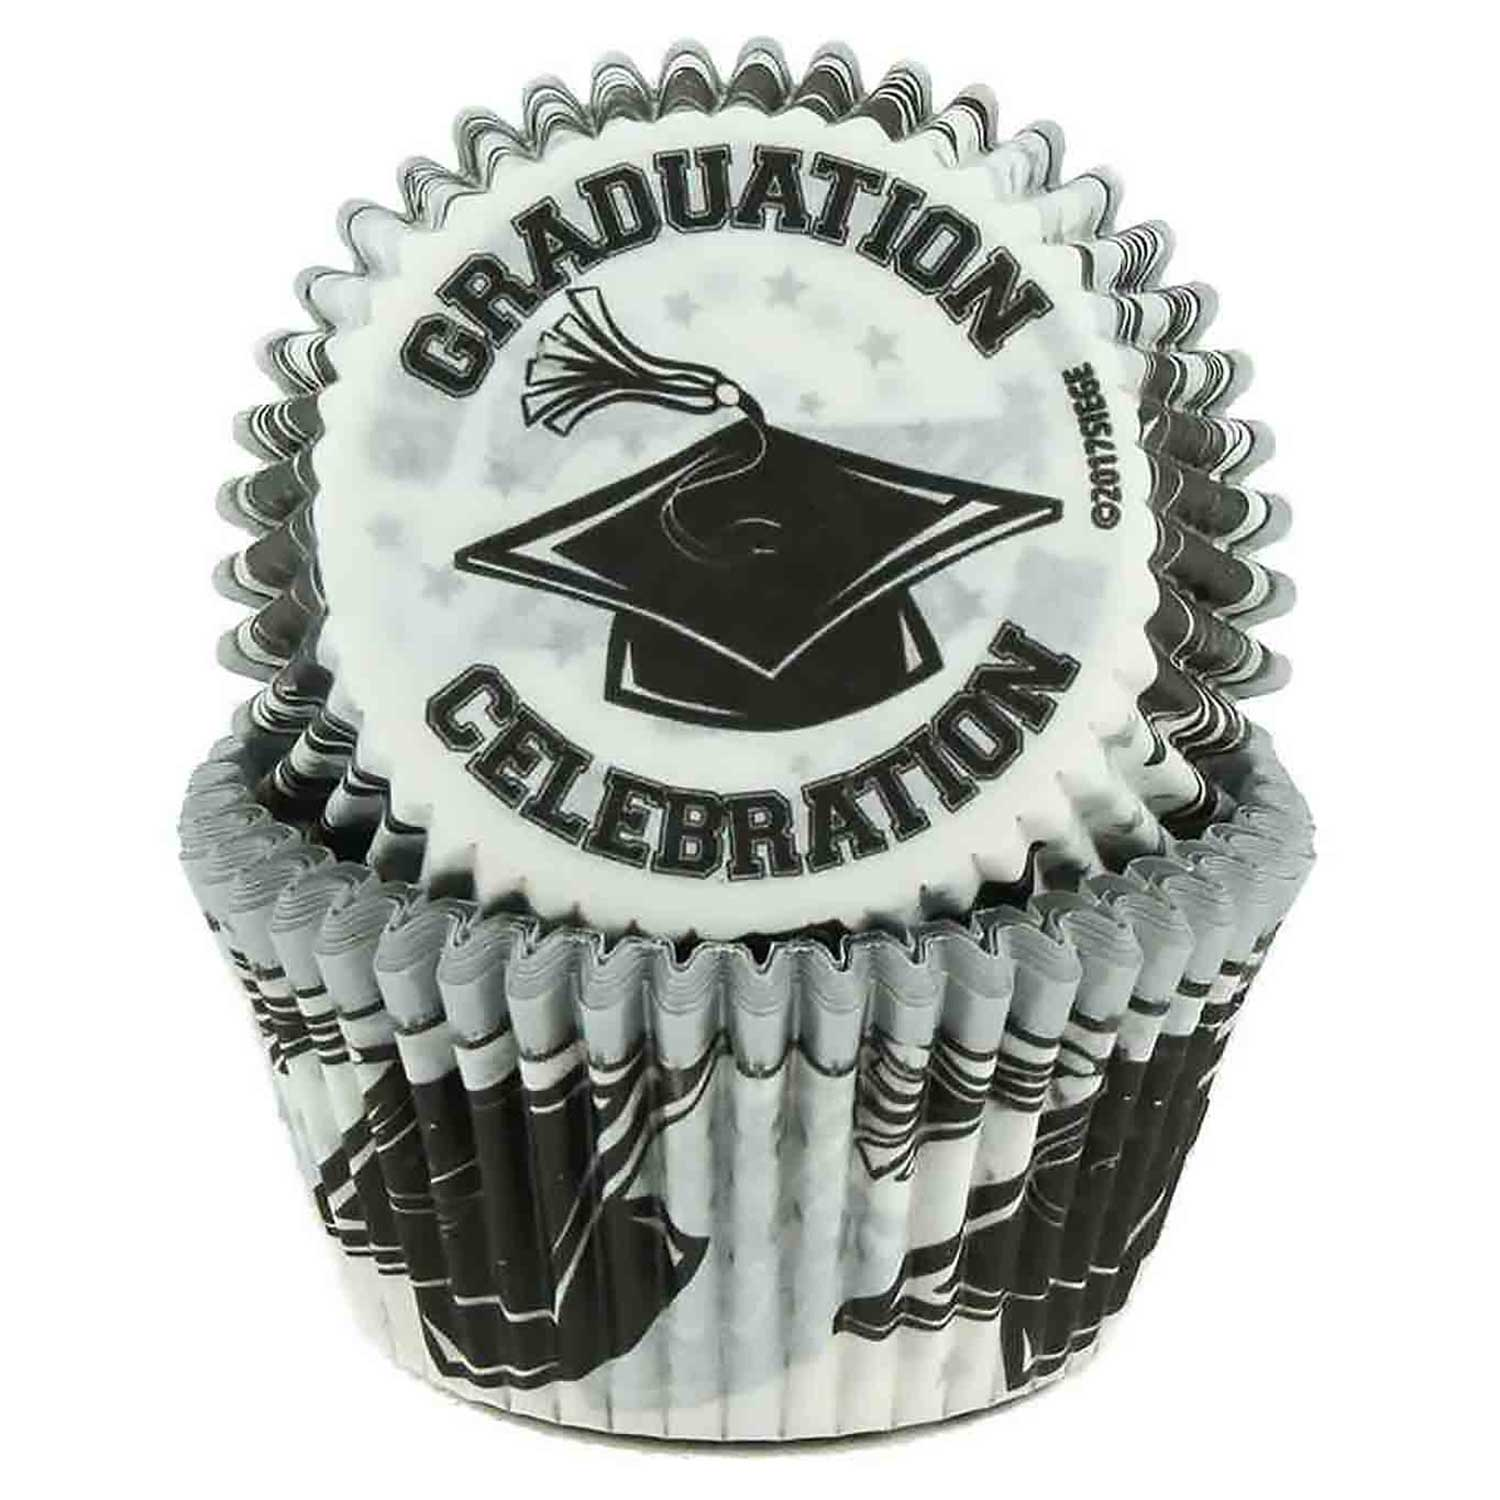 Graduation Standard Baking Cups